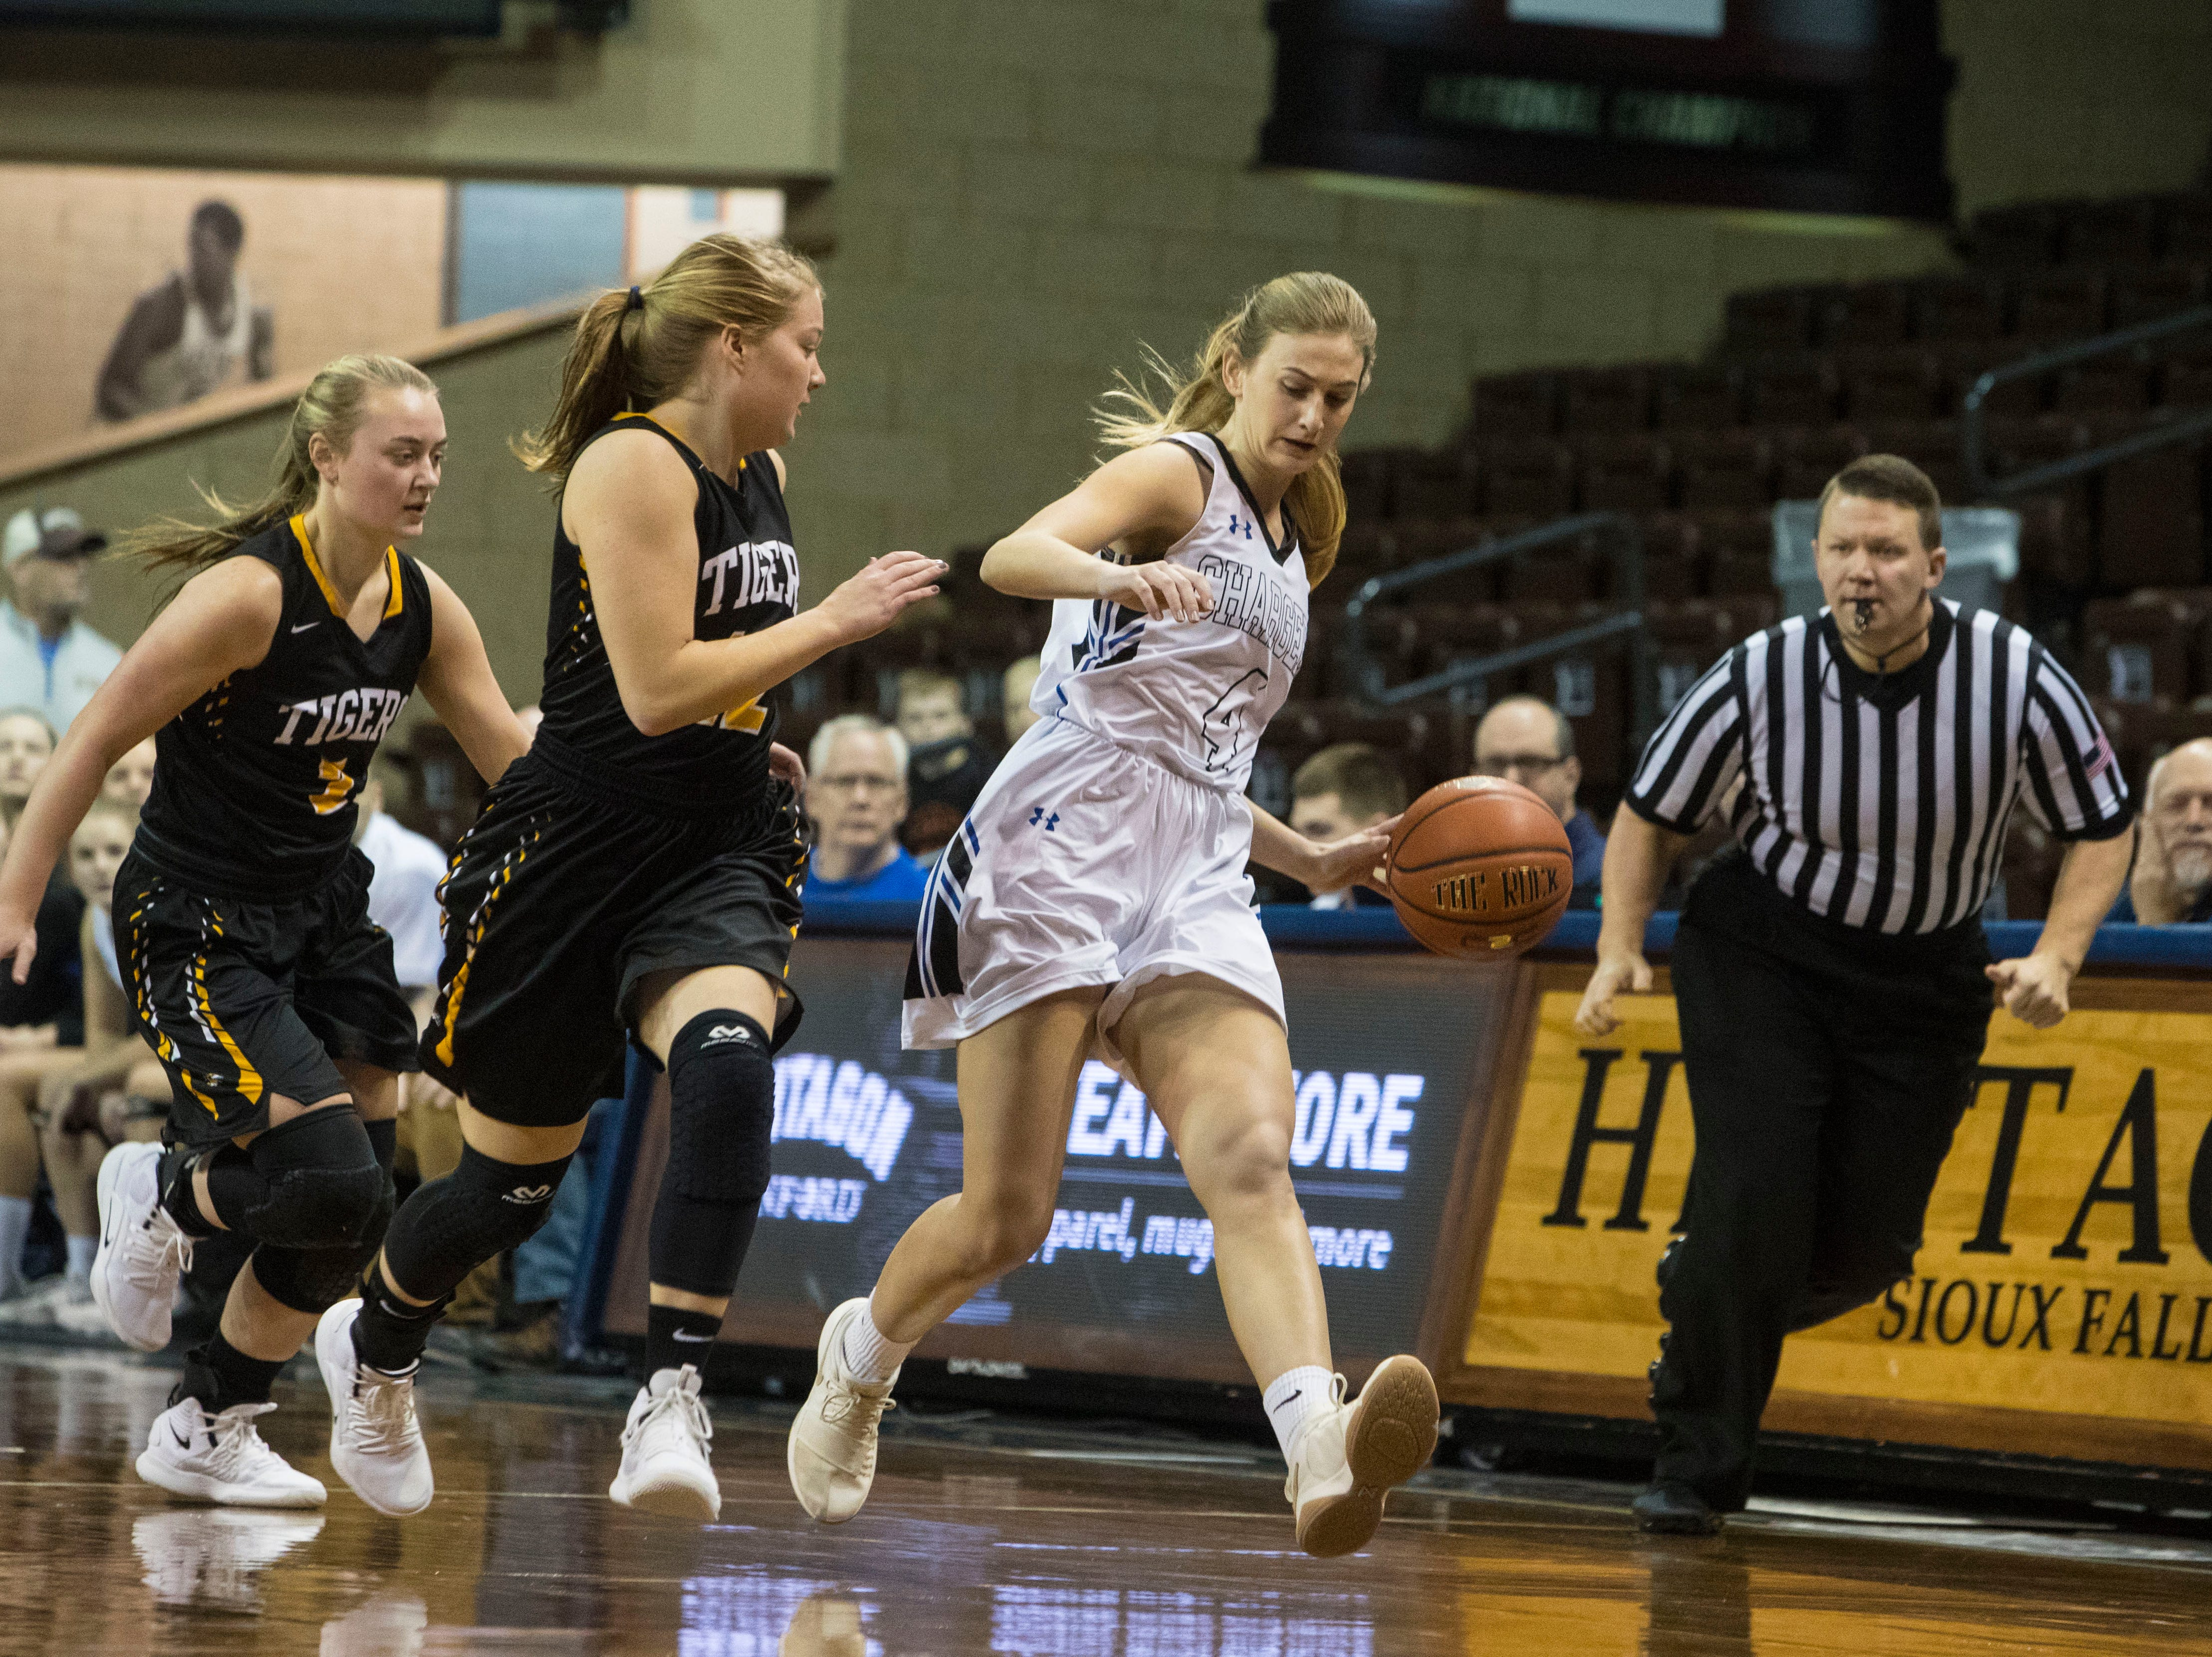 Sioux Falls Christian's Sam Fykstra (4) dribbles the past Hutchinson players during the Hoop City Classic at the Sanford Pentagon in Sioux Falls, S.D., Saturday, Dec. 29, 2018.